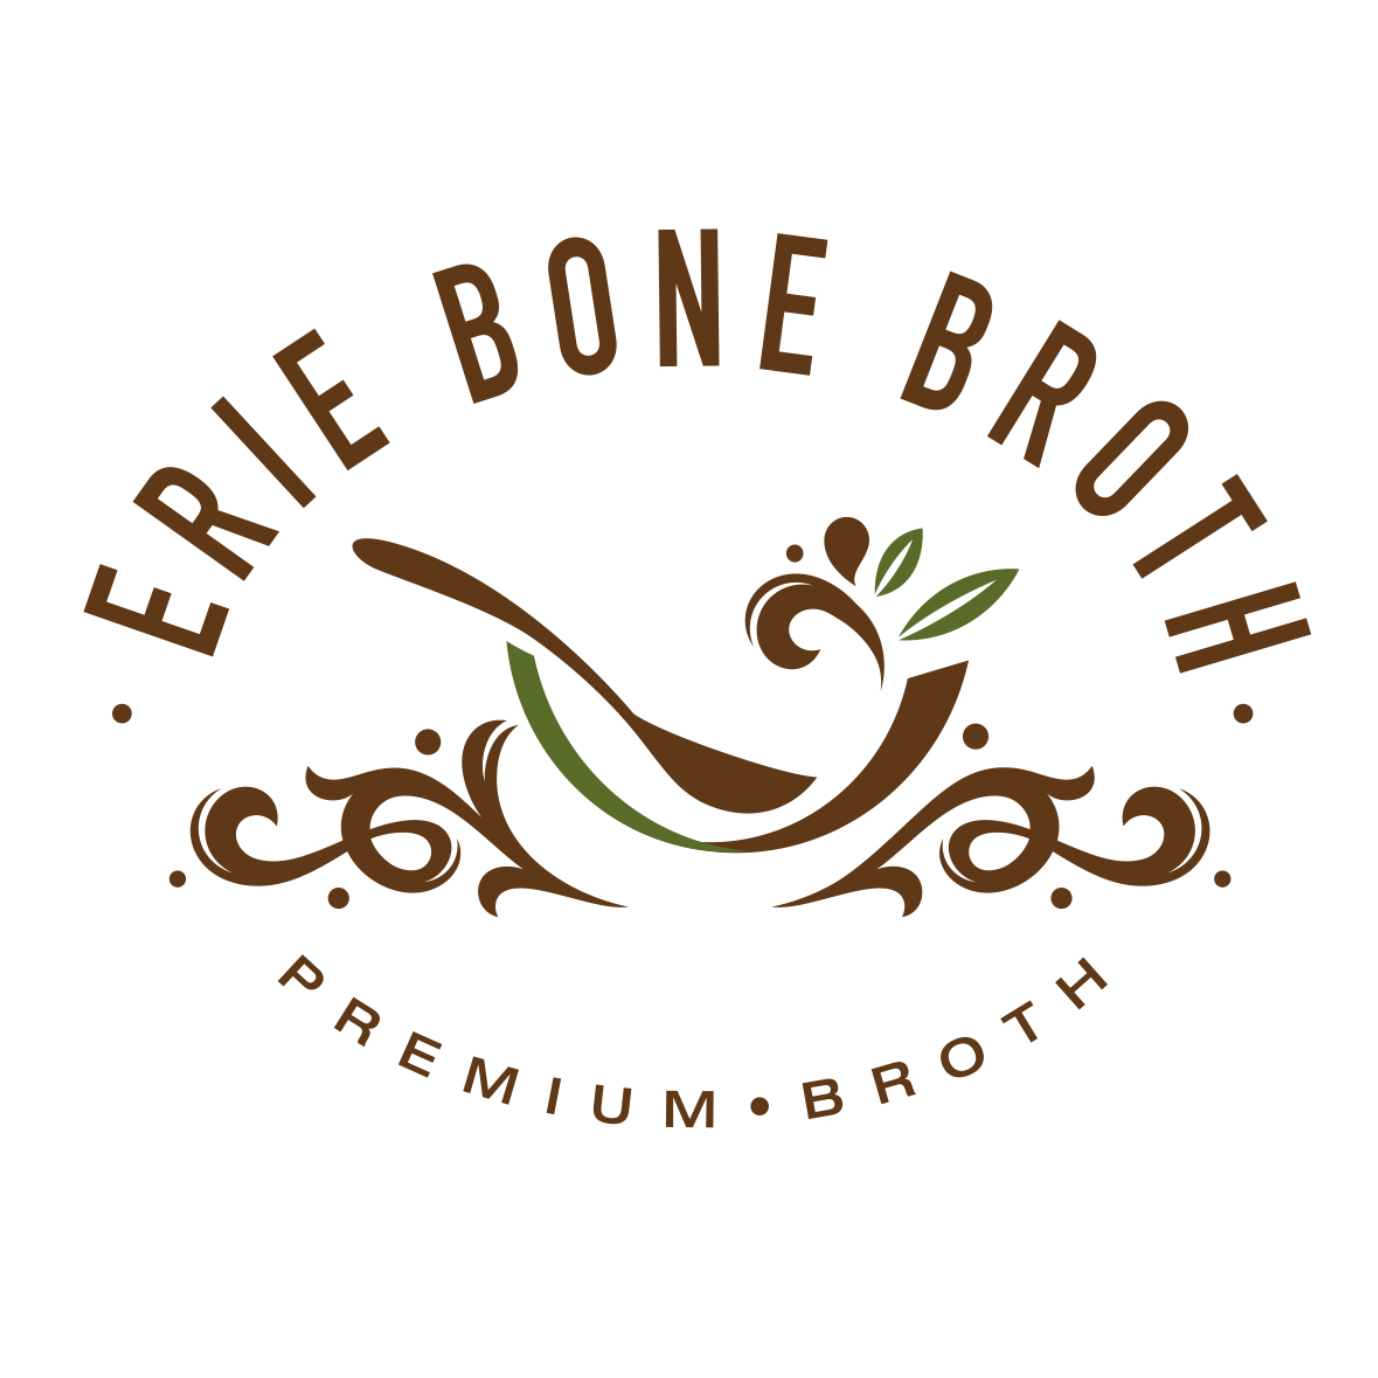 Erie Bone Broth - Certified Paleo by the Paleo Foundation